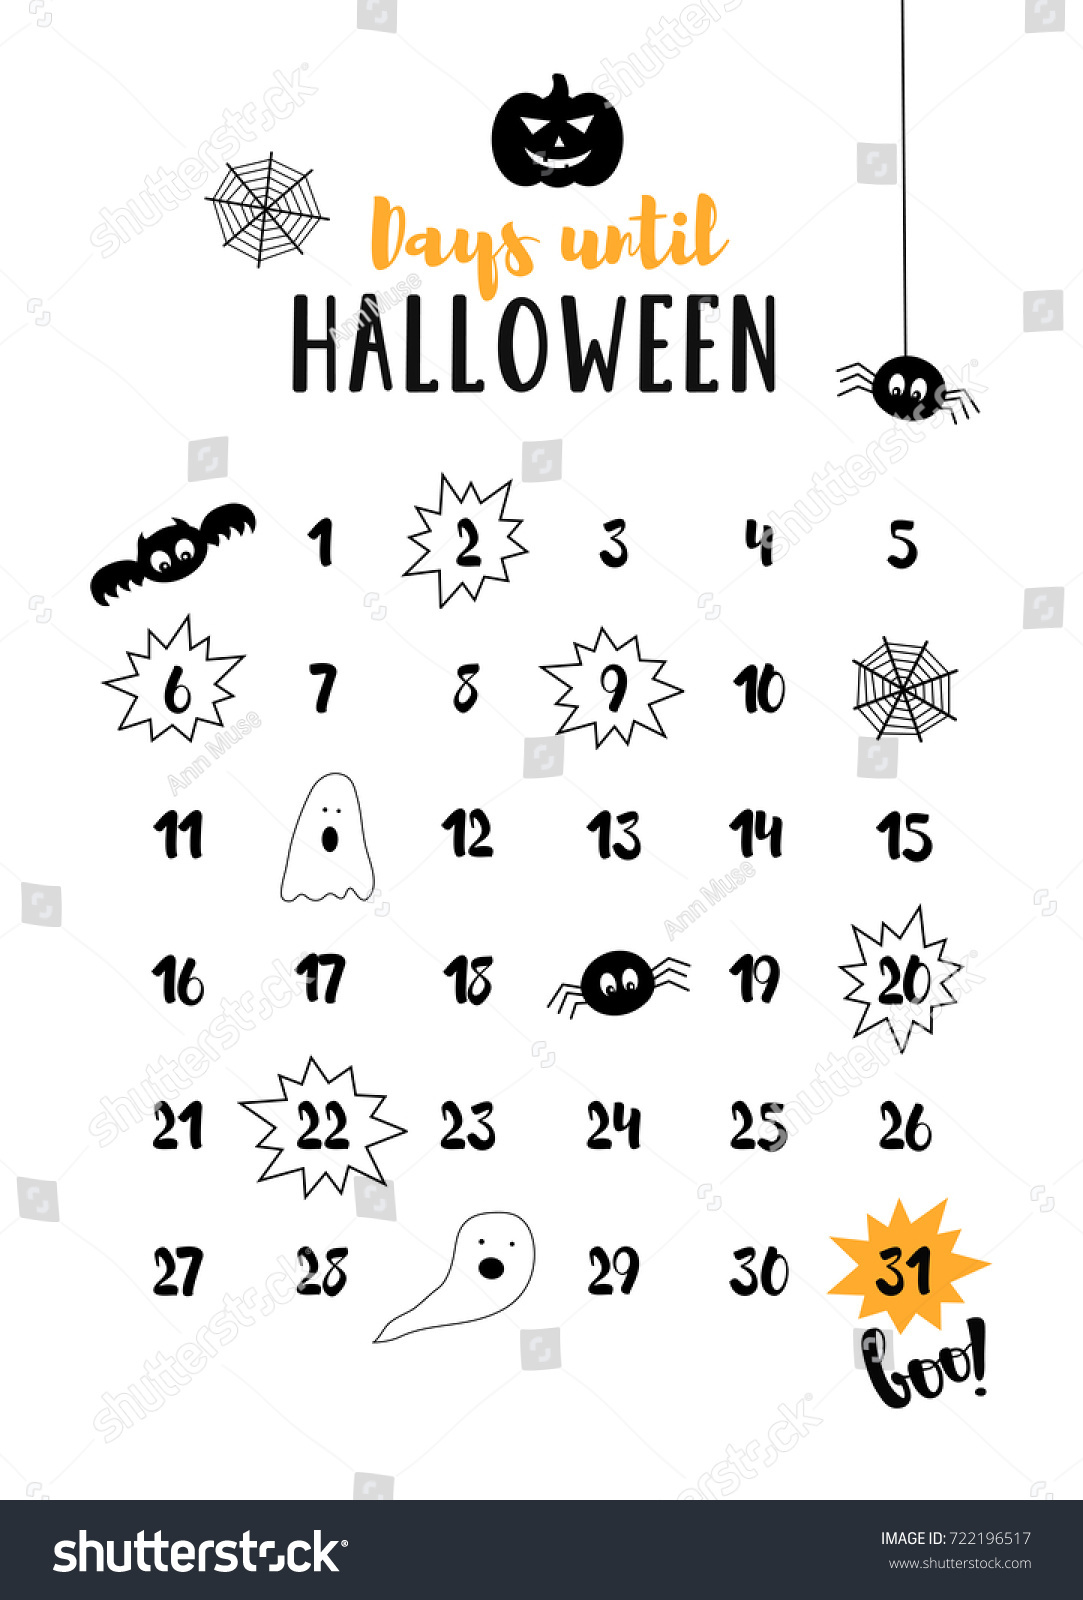 days until halloween halloween countdown october stock vector